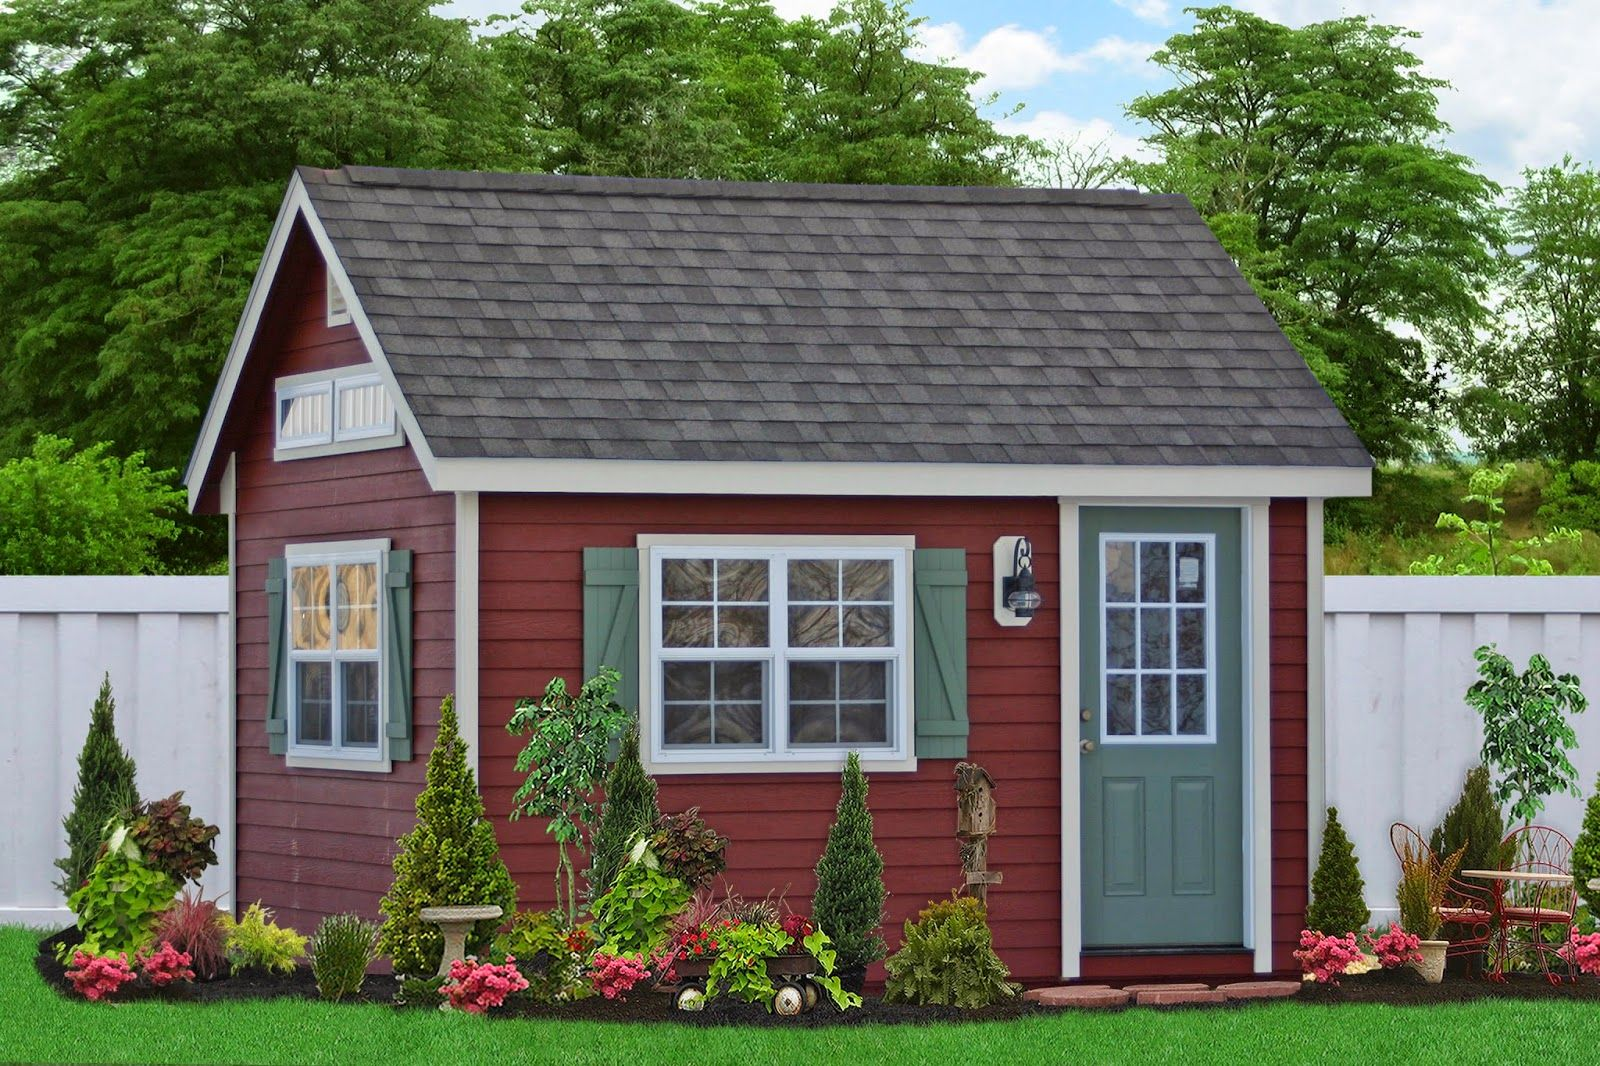 Color ideas for barn house roof windows etc shed for Building a home office in backyard